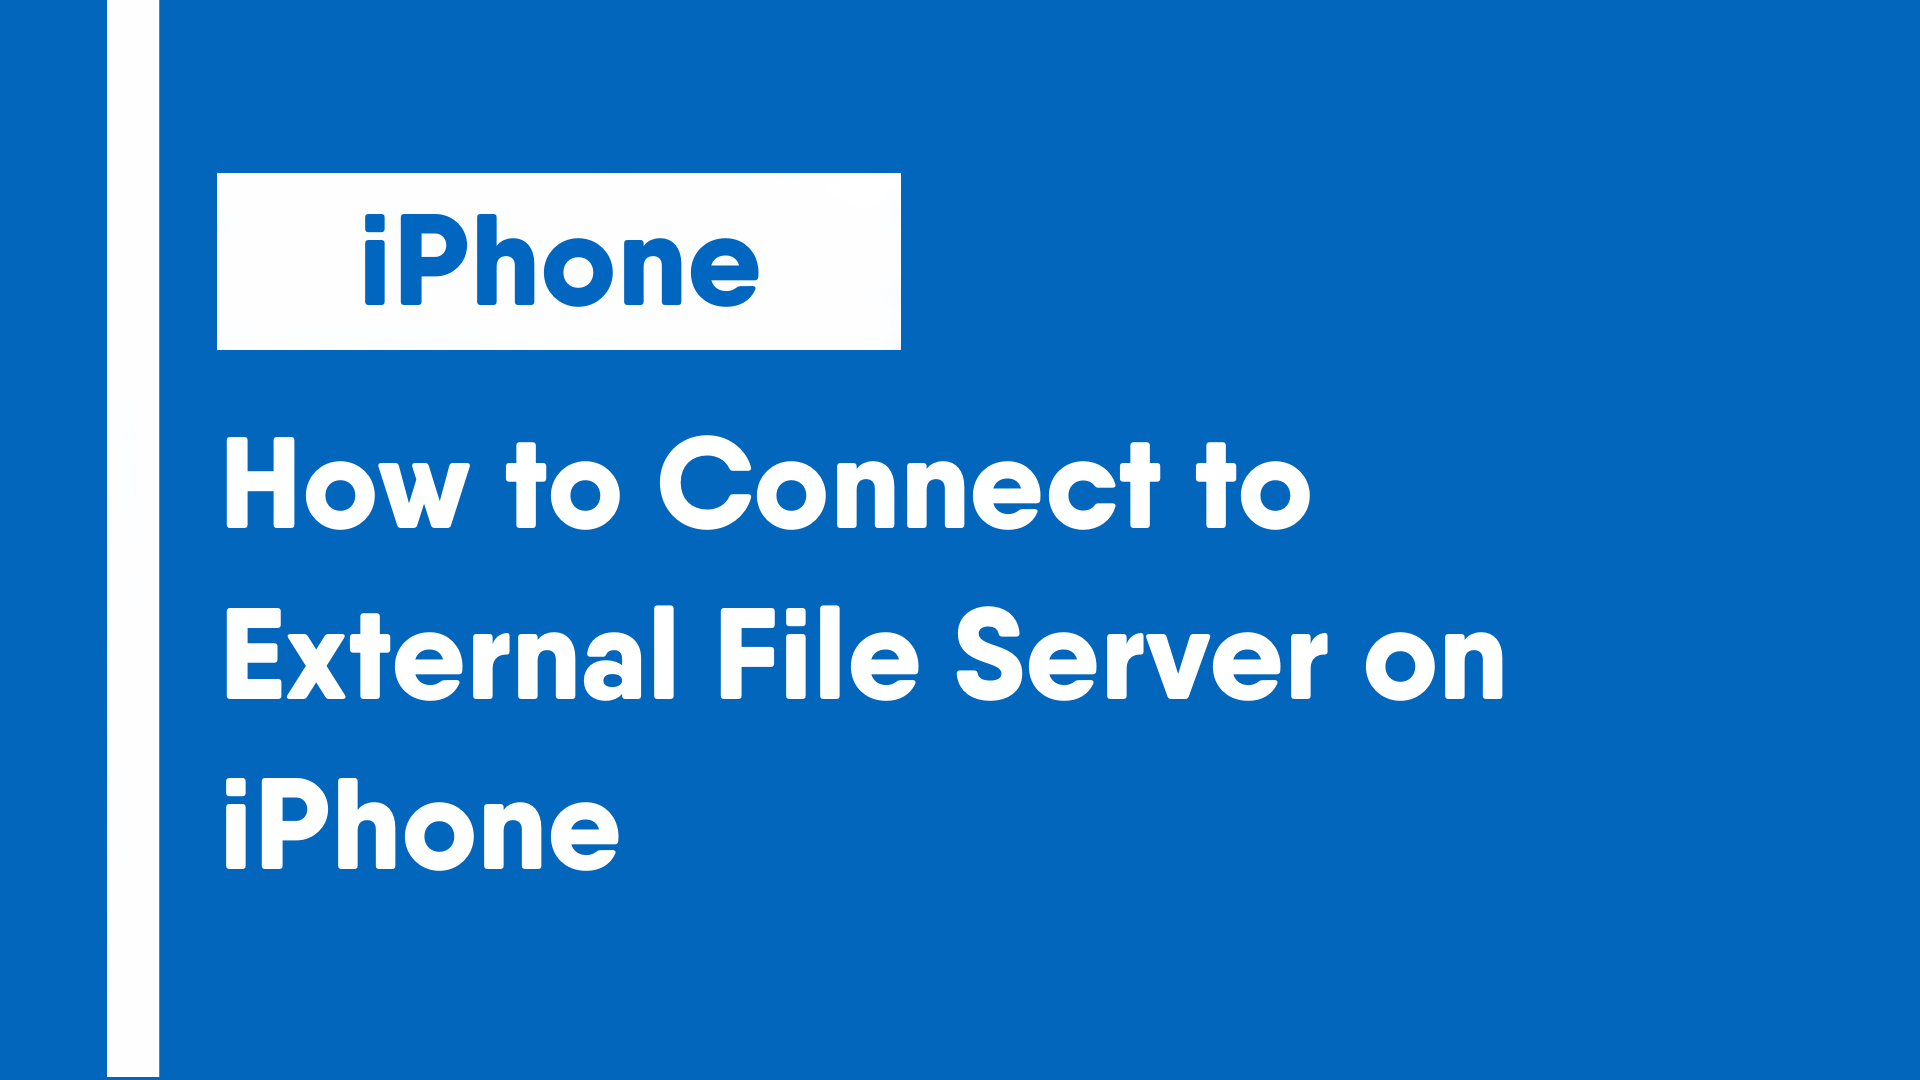 How to Connect to External File Server on iPhone